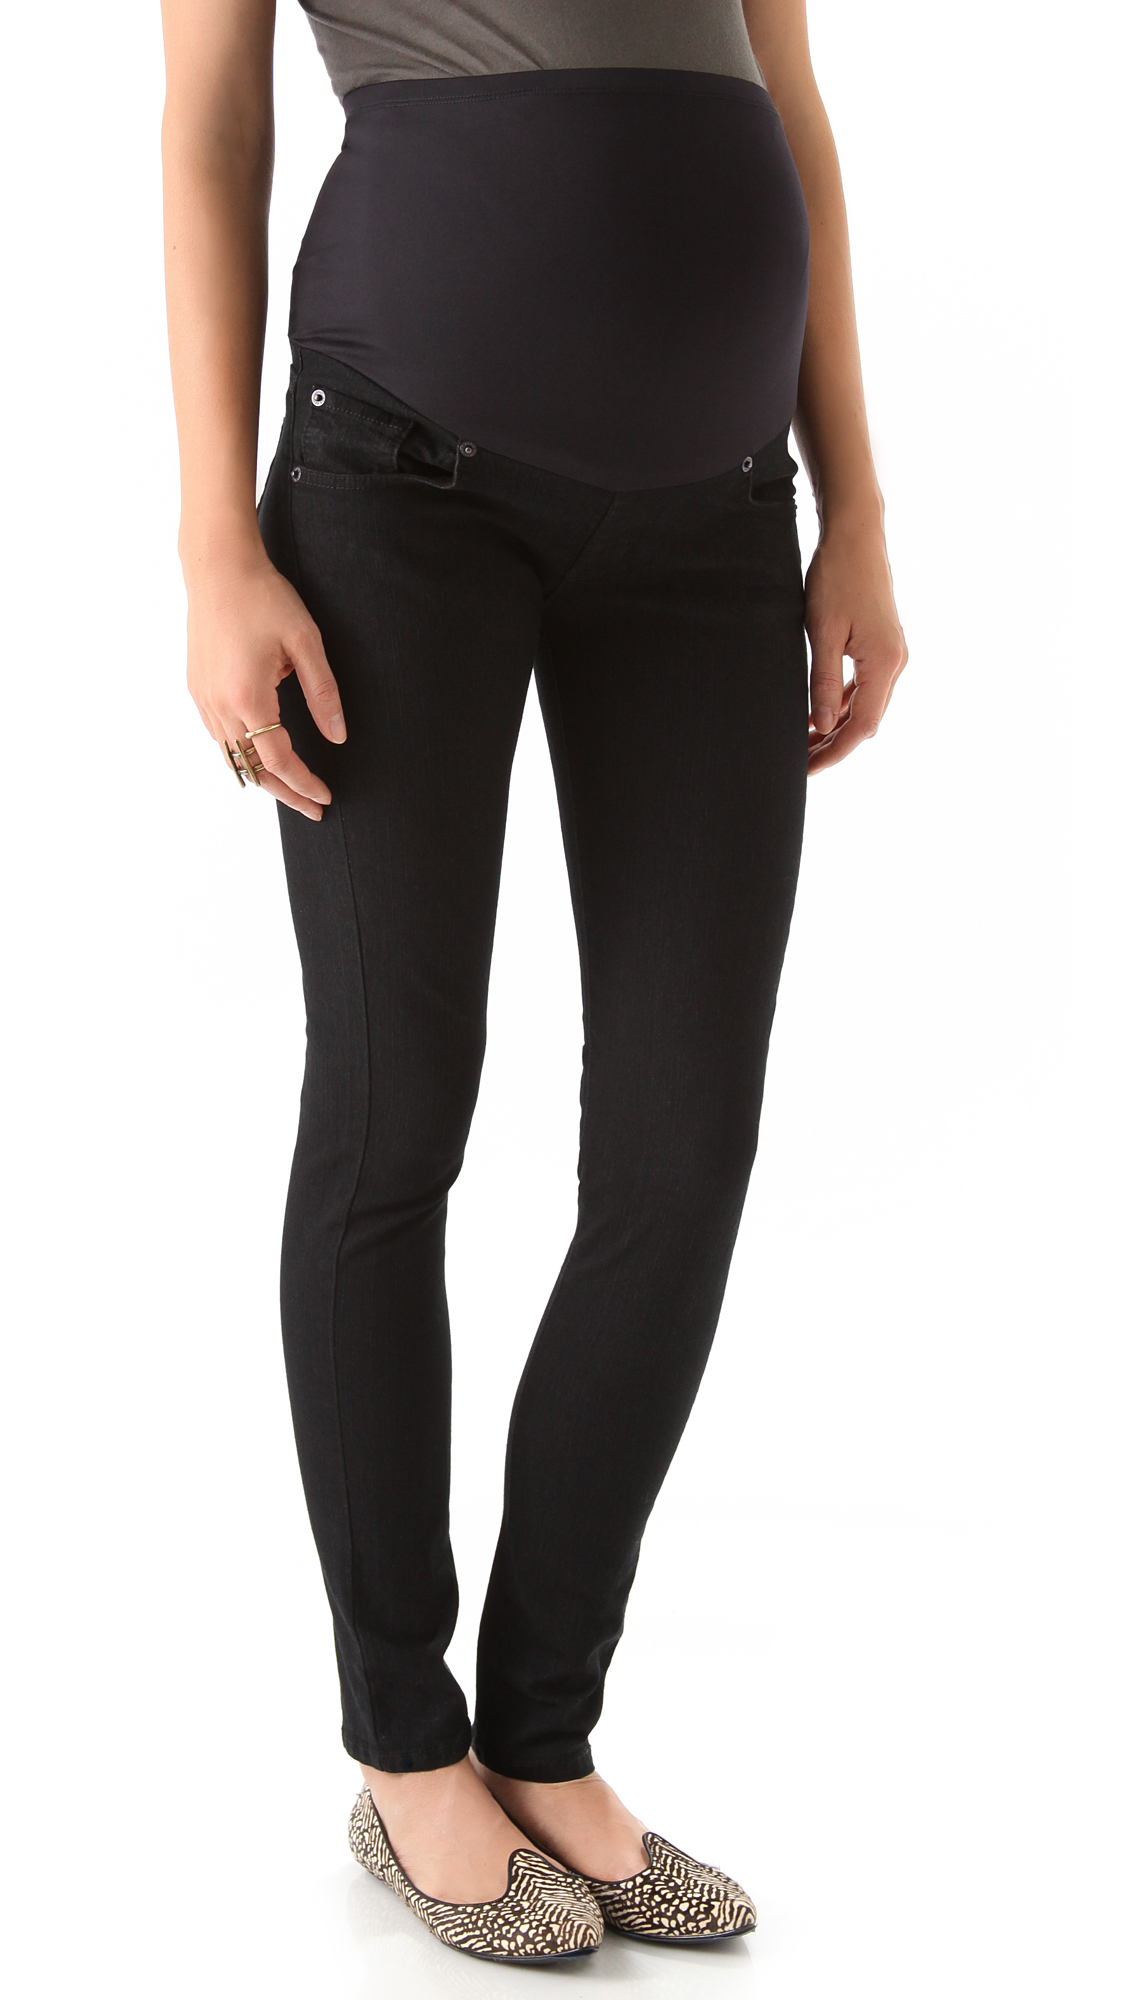 James Jeans Twiggy Maternity Skinny Jeans | 15% off first app ...